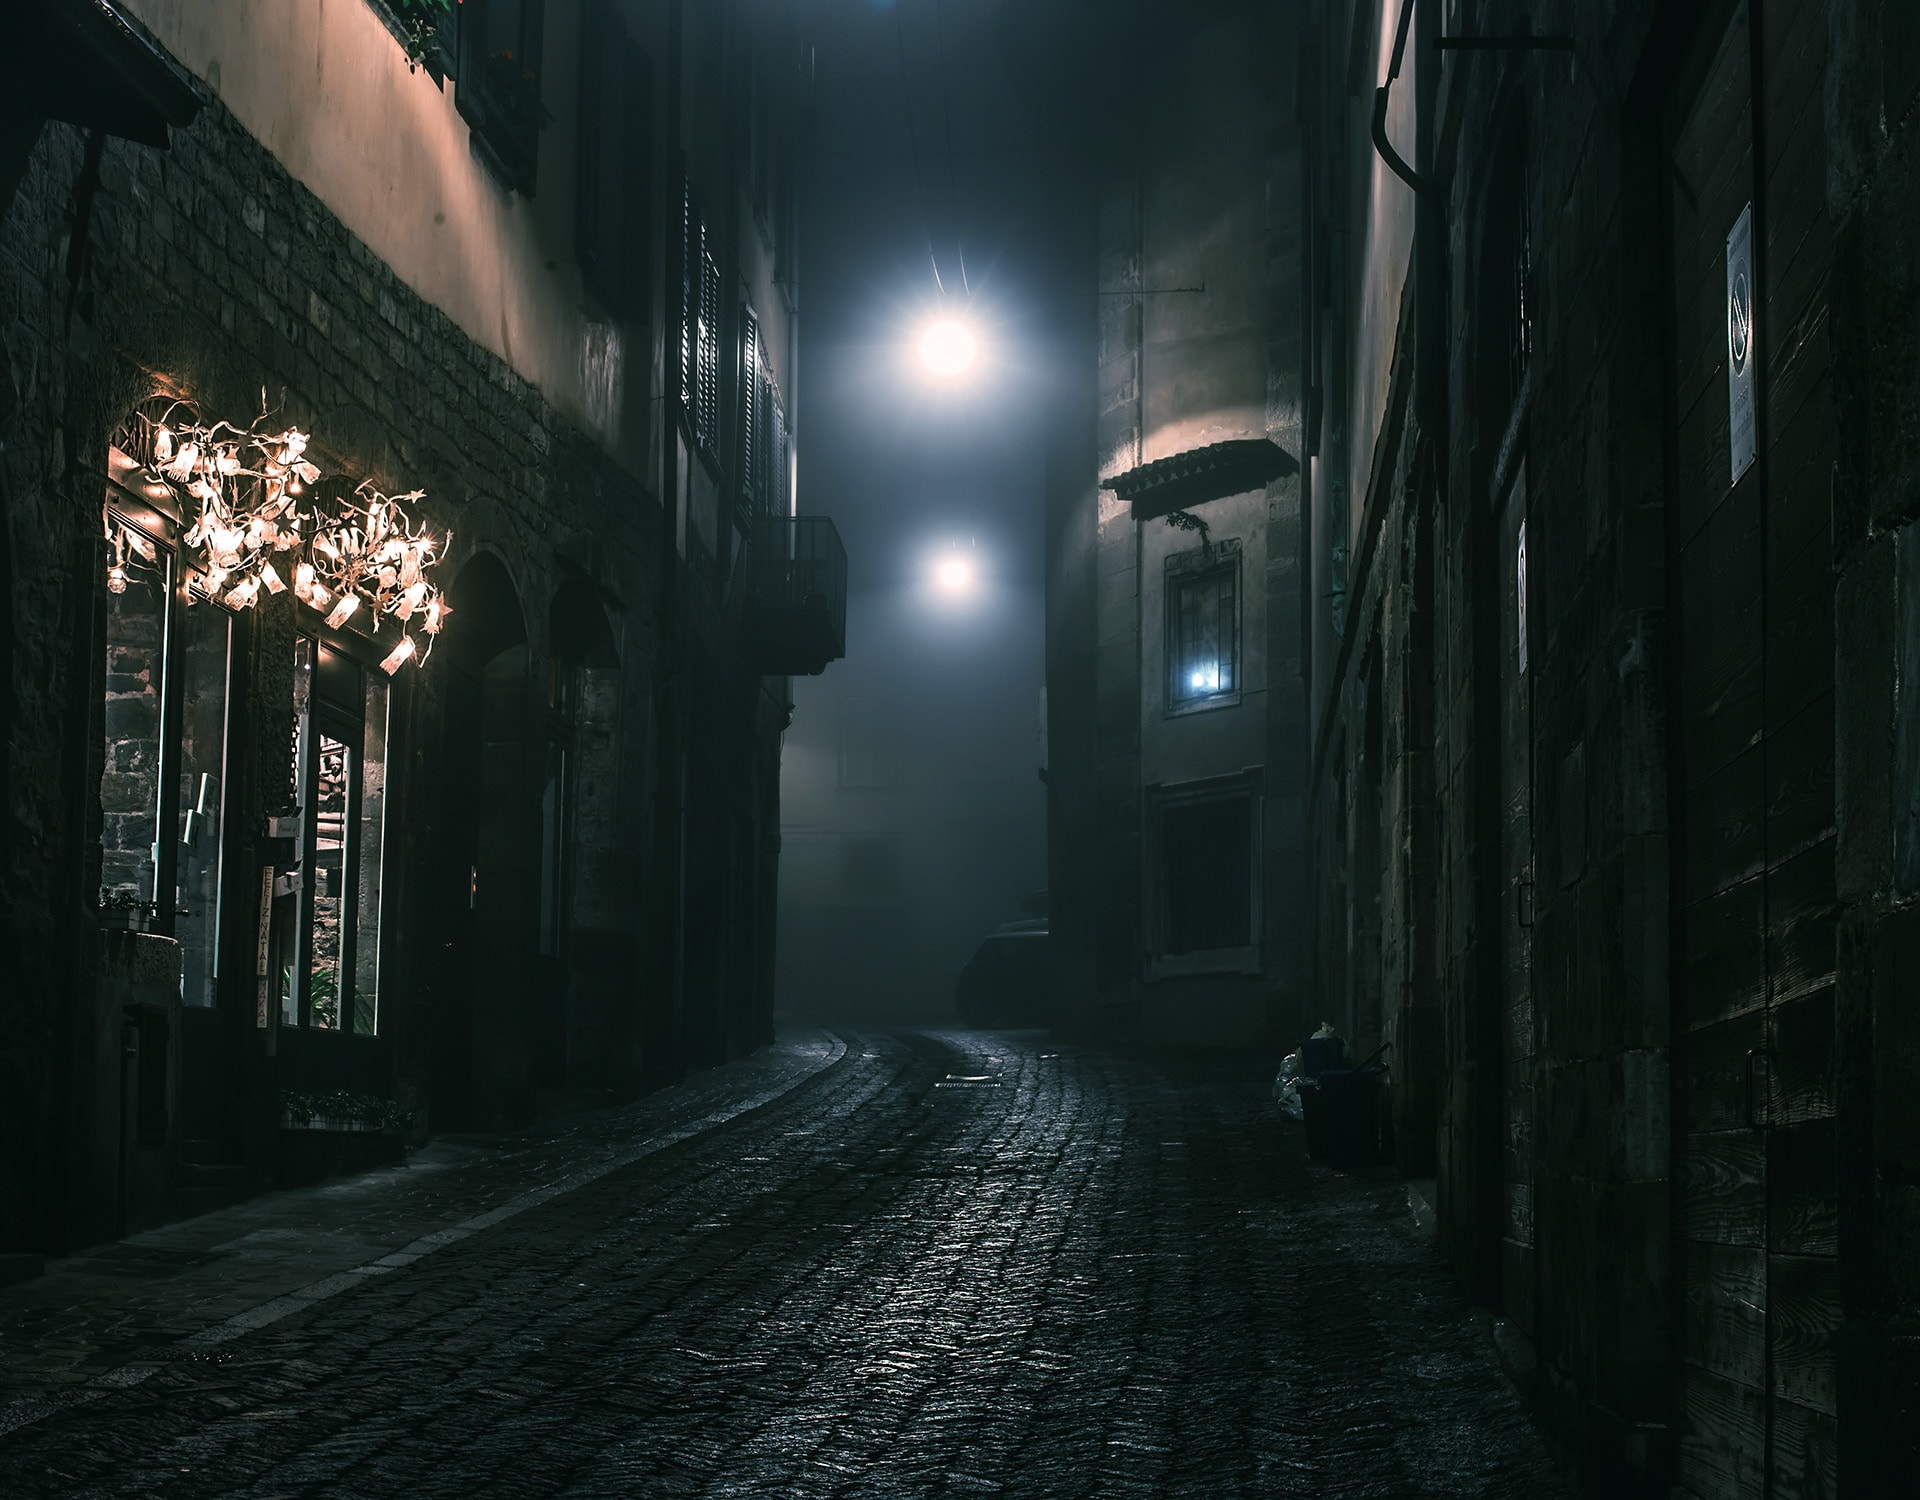 A dark foreboding alley in a medieval town